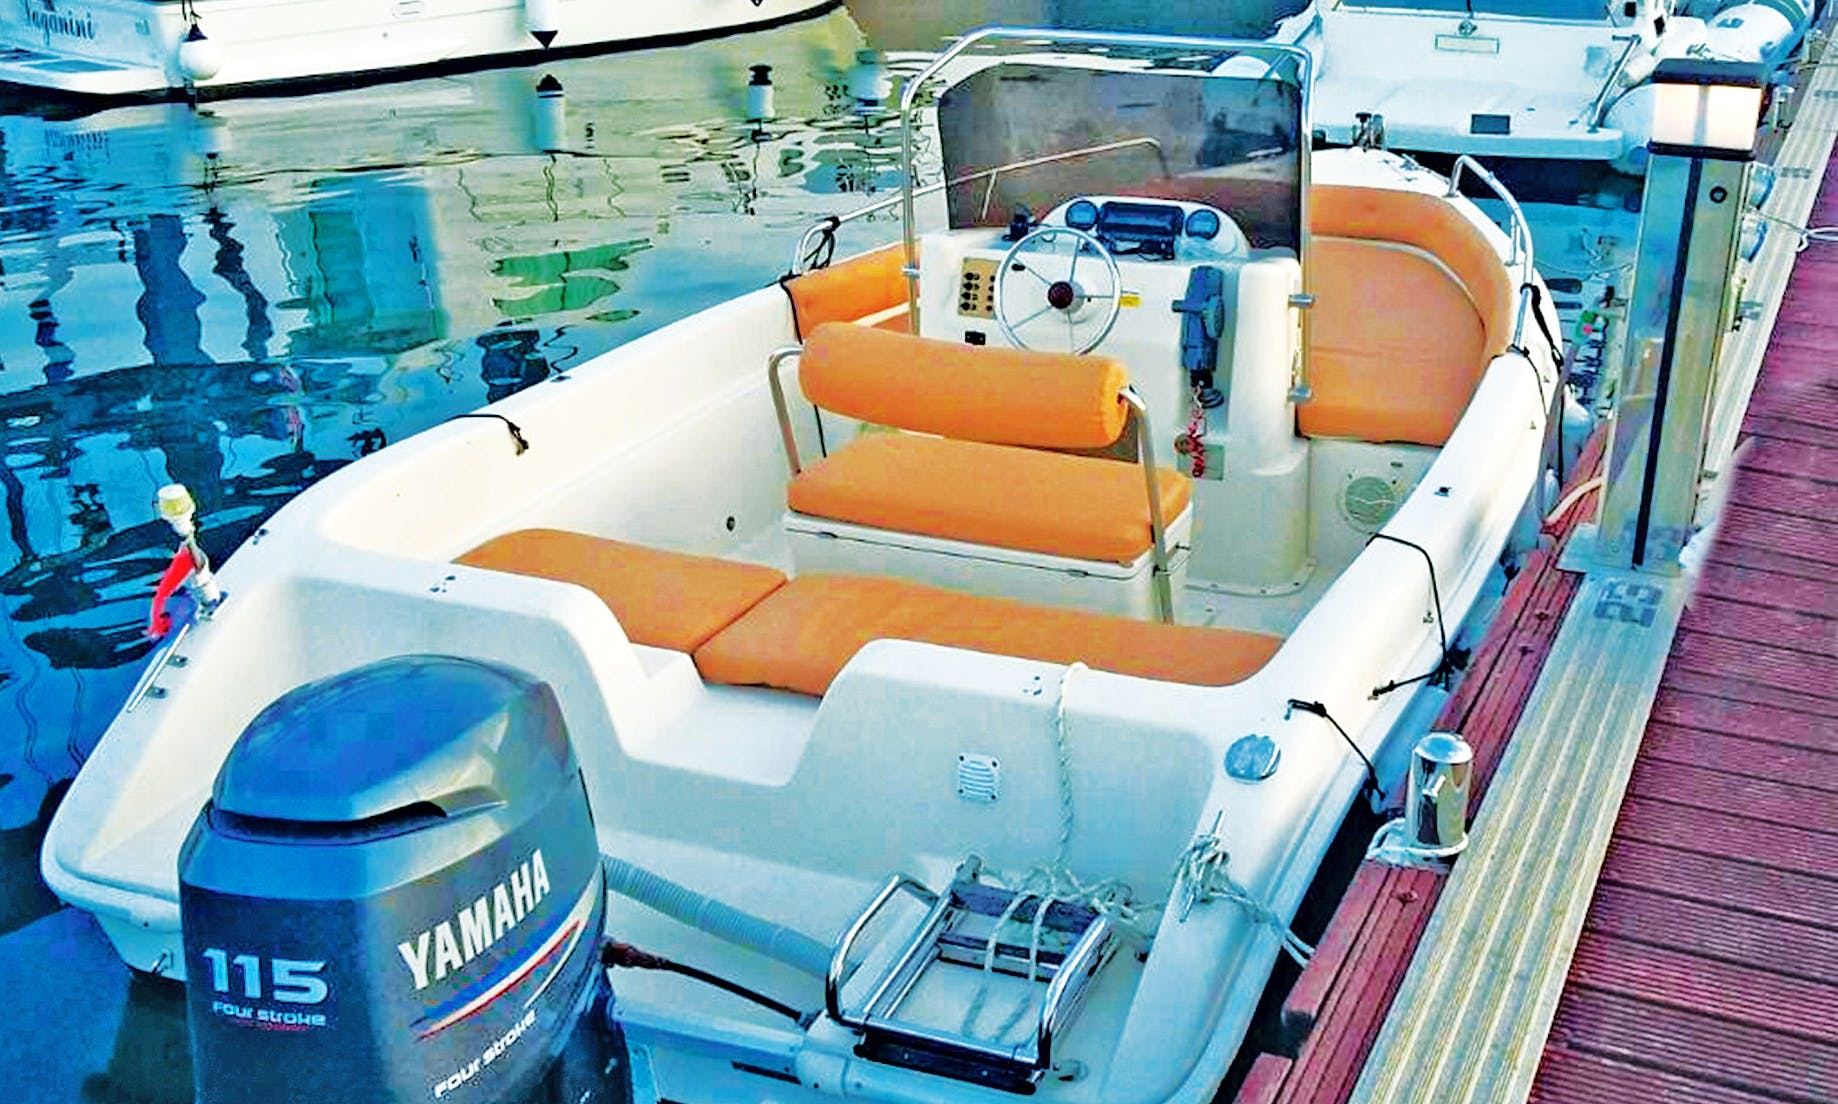 Explore the Adriatic Sea in 19' center console rental in Preko